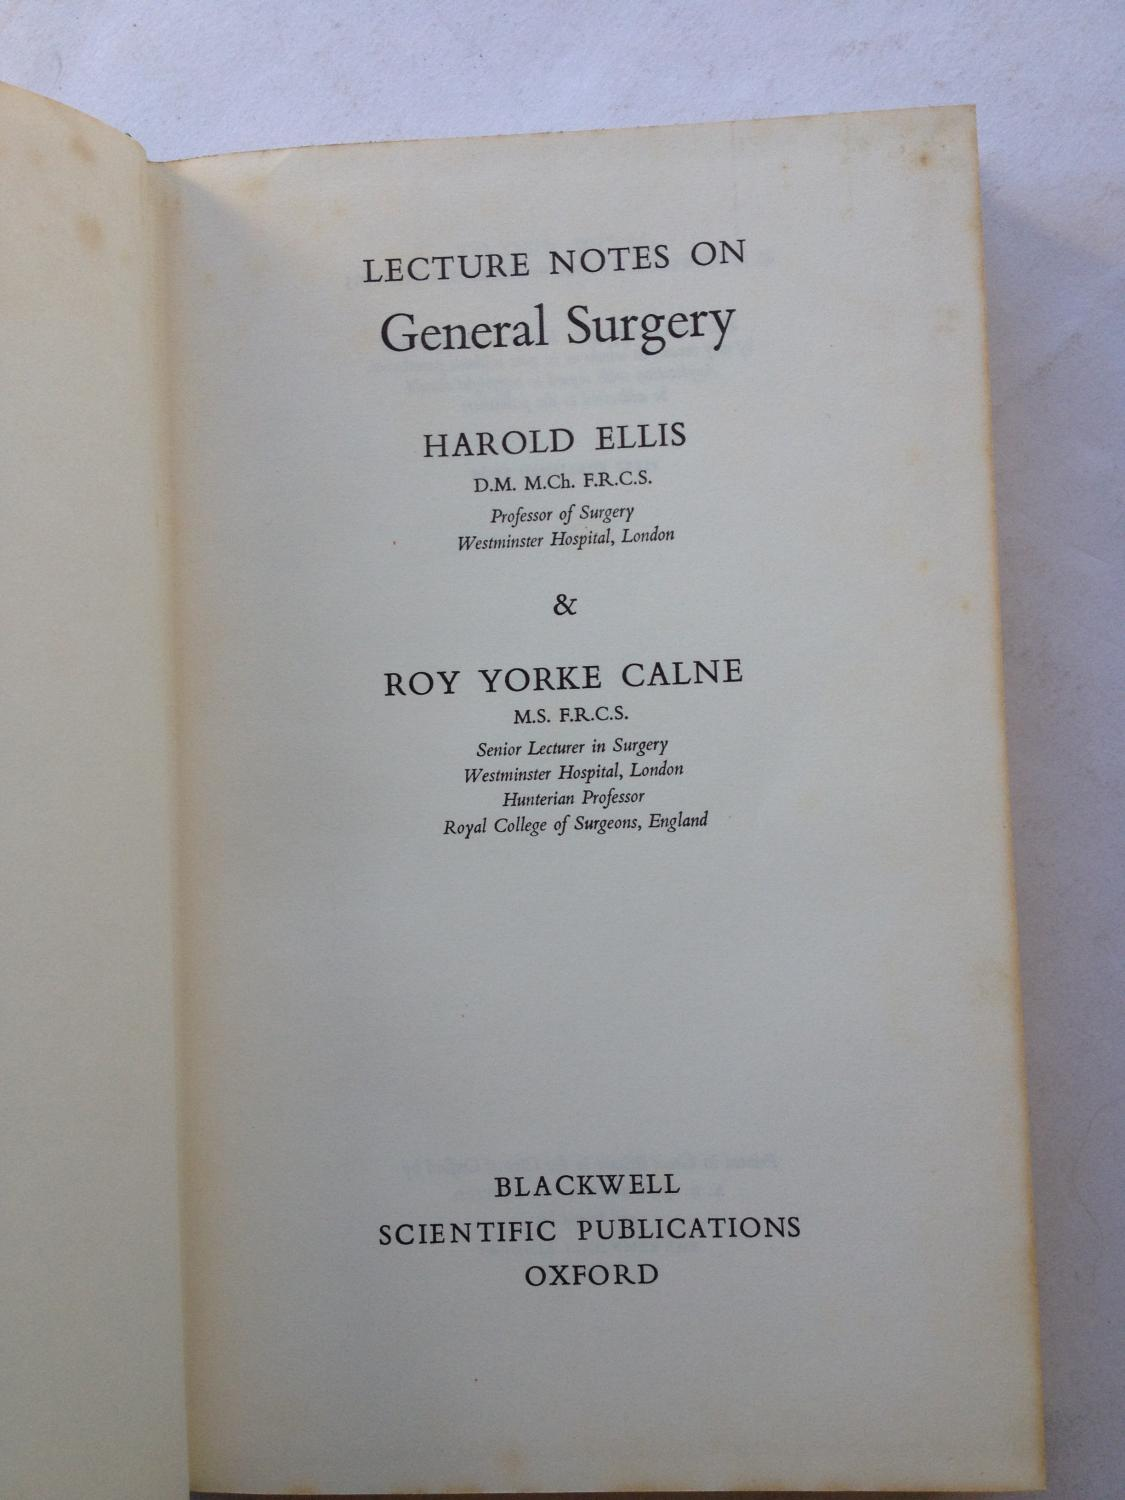 Ellis Harold Calne Roy Yorke Lecture Notes On General Surgery Abebooks